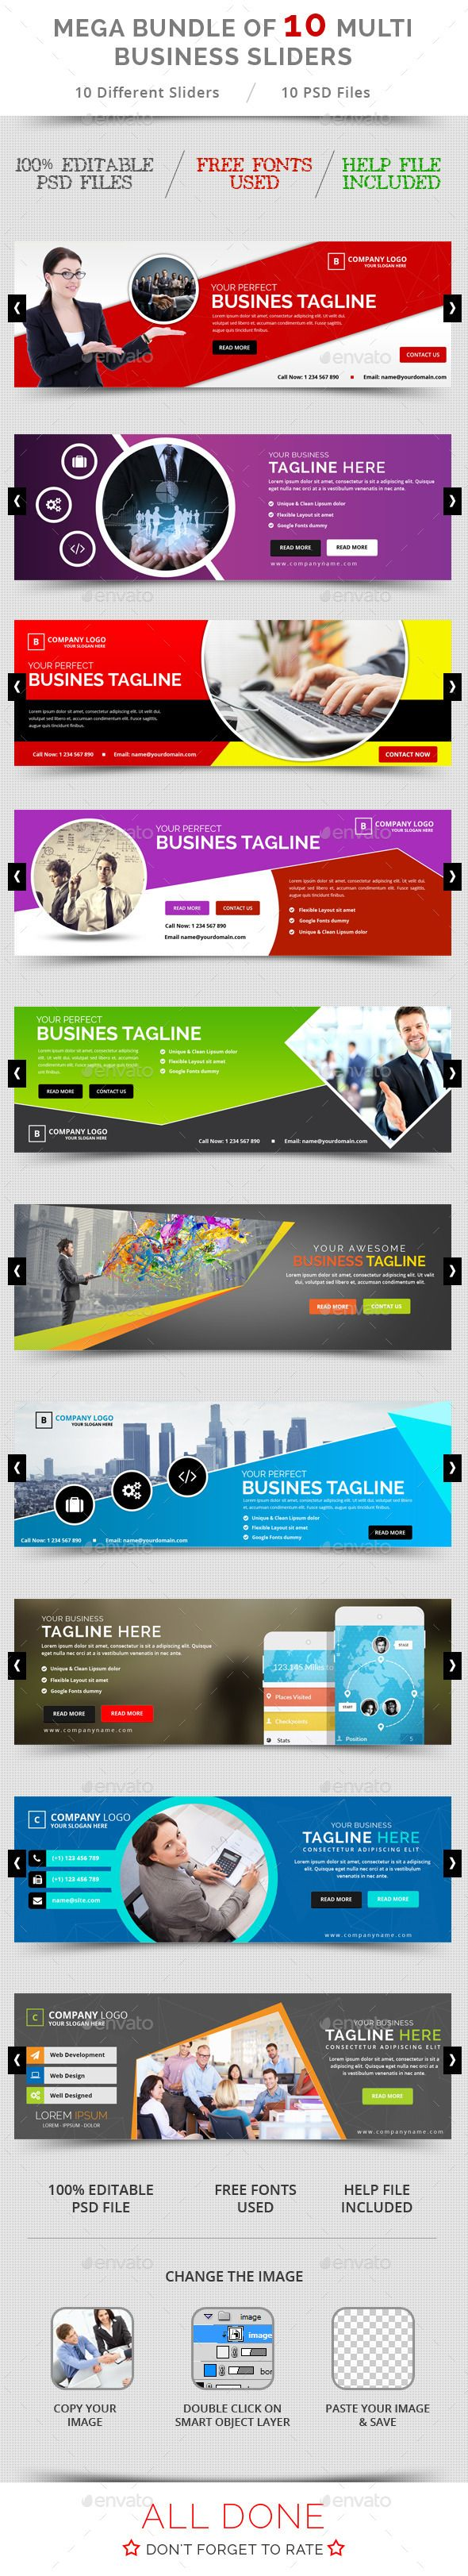 Bundle of 10 Business Sliders Templates PSD. Download here: http://graphicriver.net/item/bundle-of-10-business-sliders/11769938?ref=ksioks